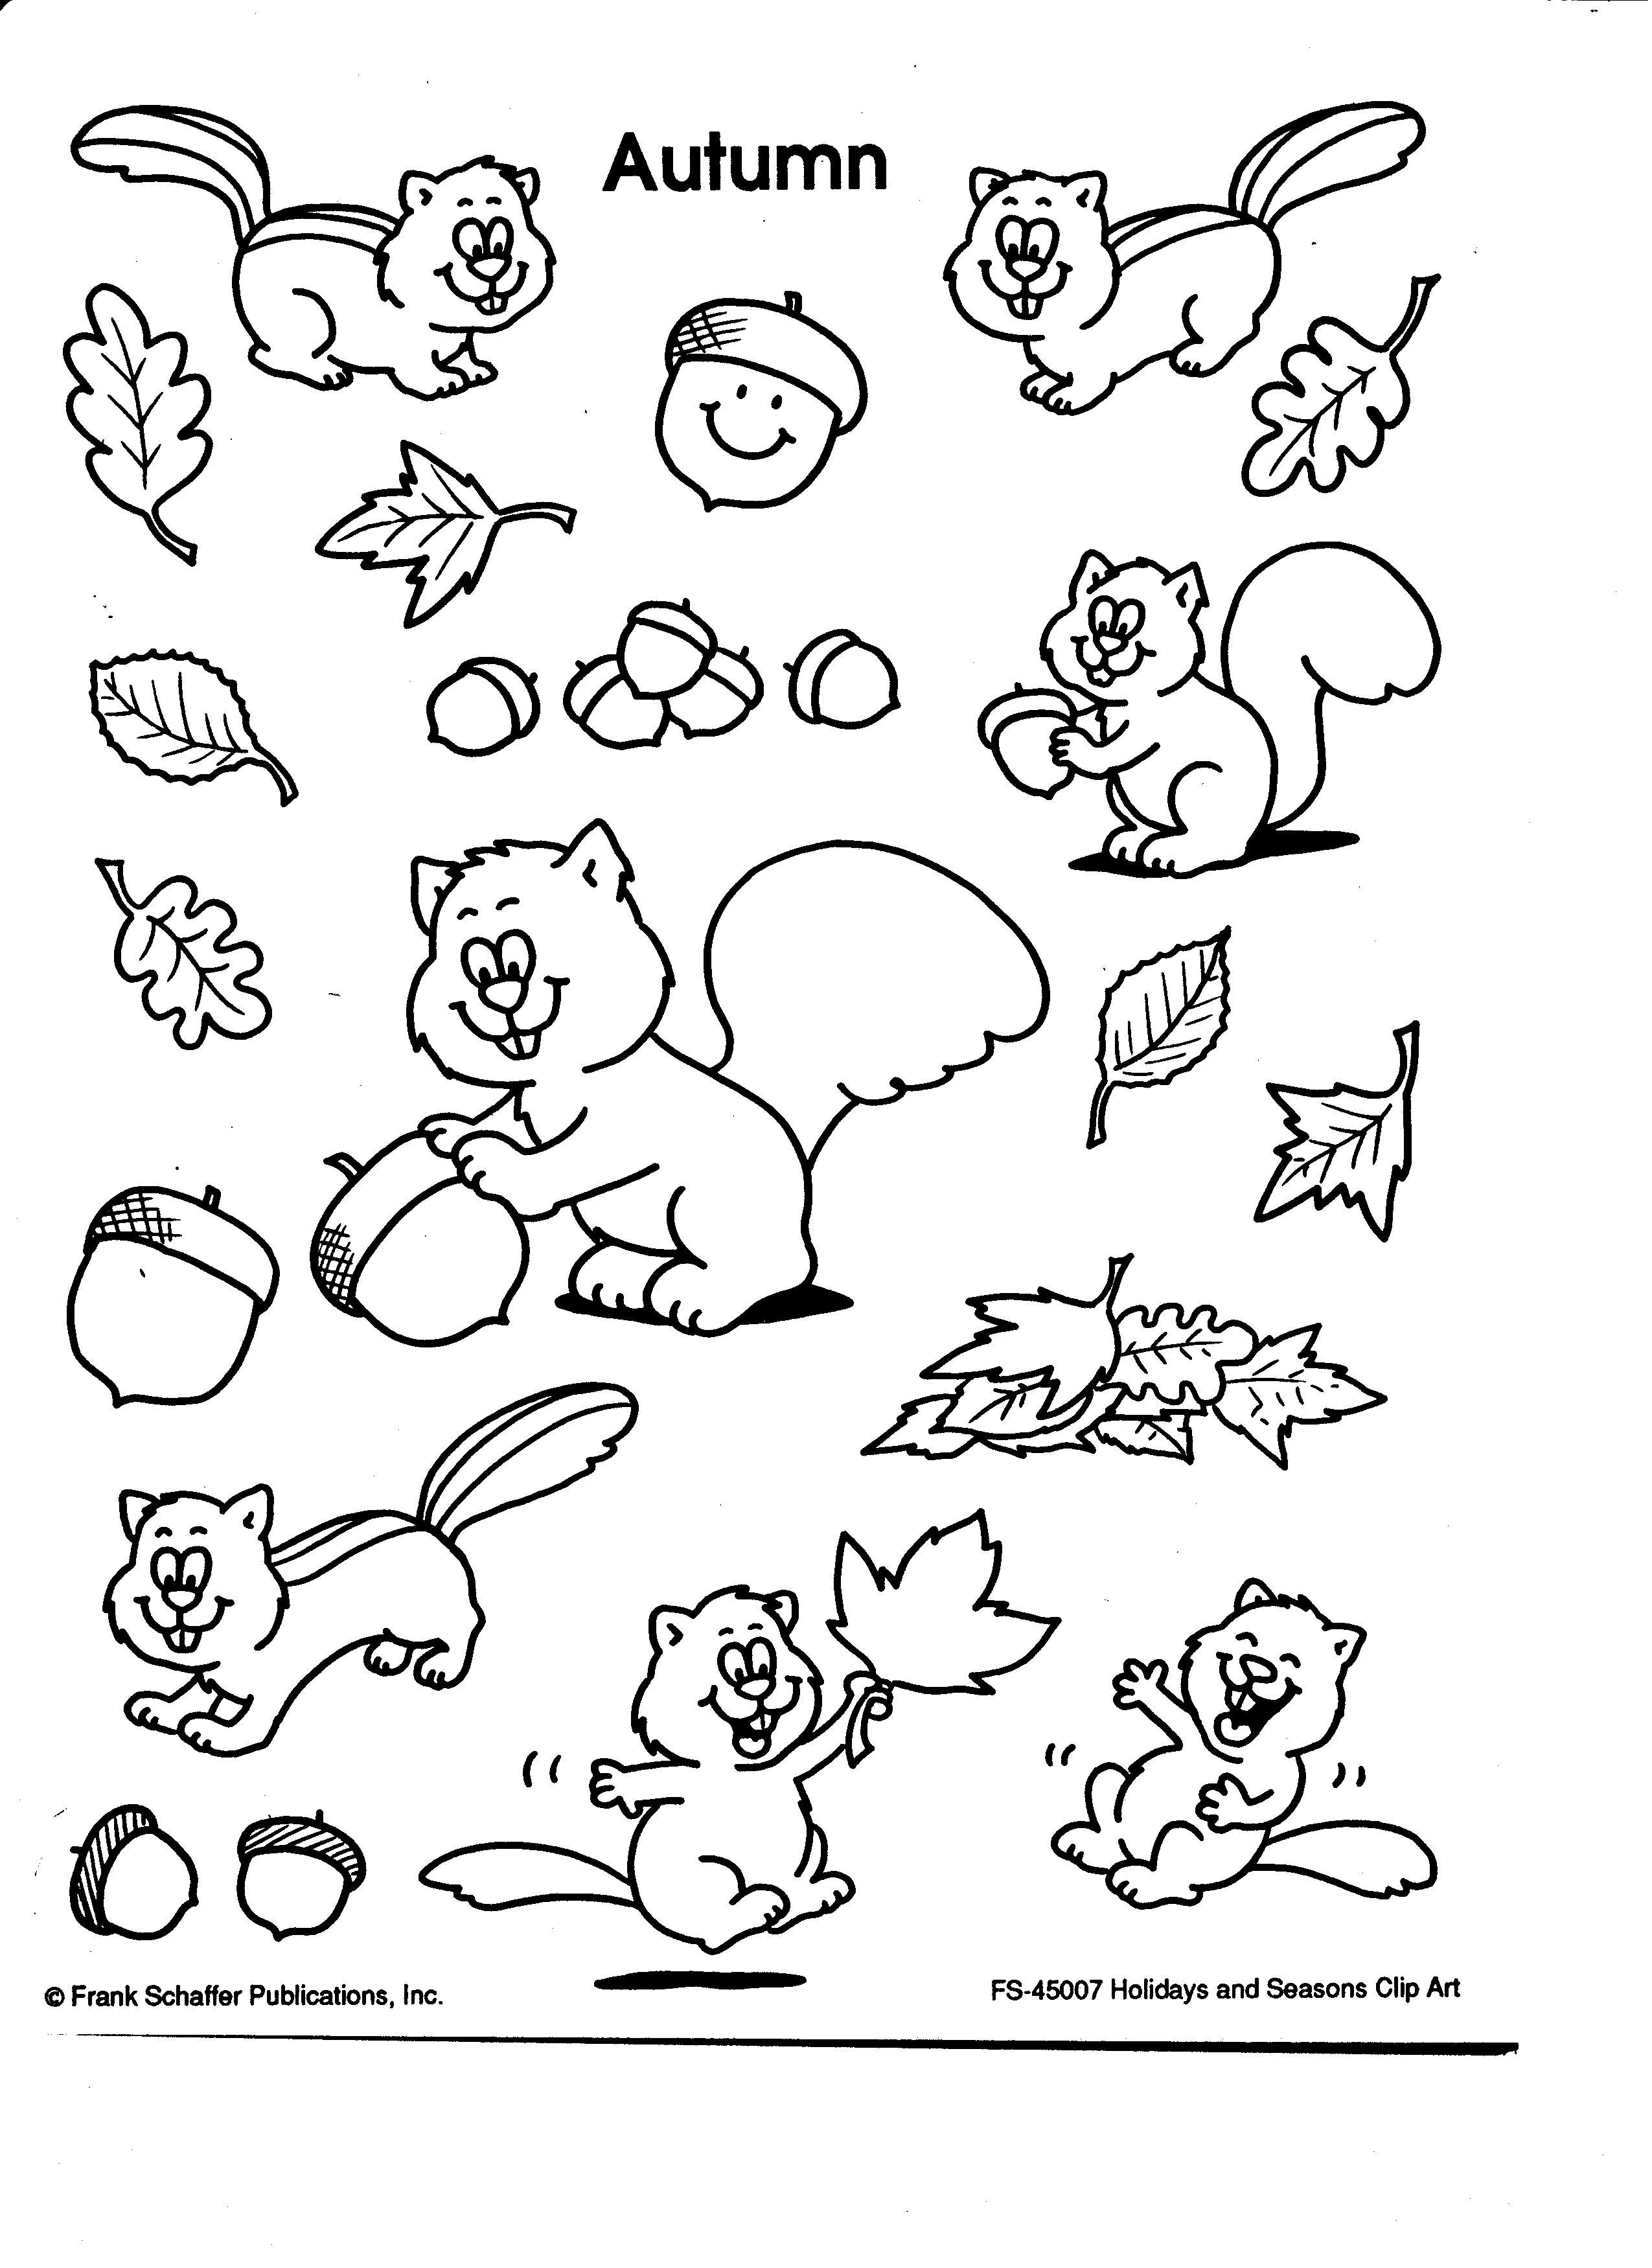 Autumn Clip Art Squirrels Leaves Nuts